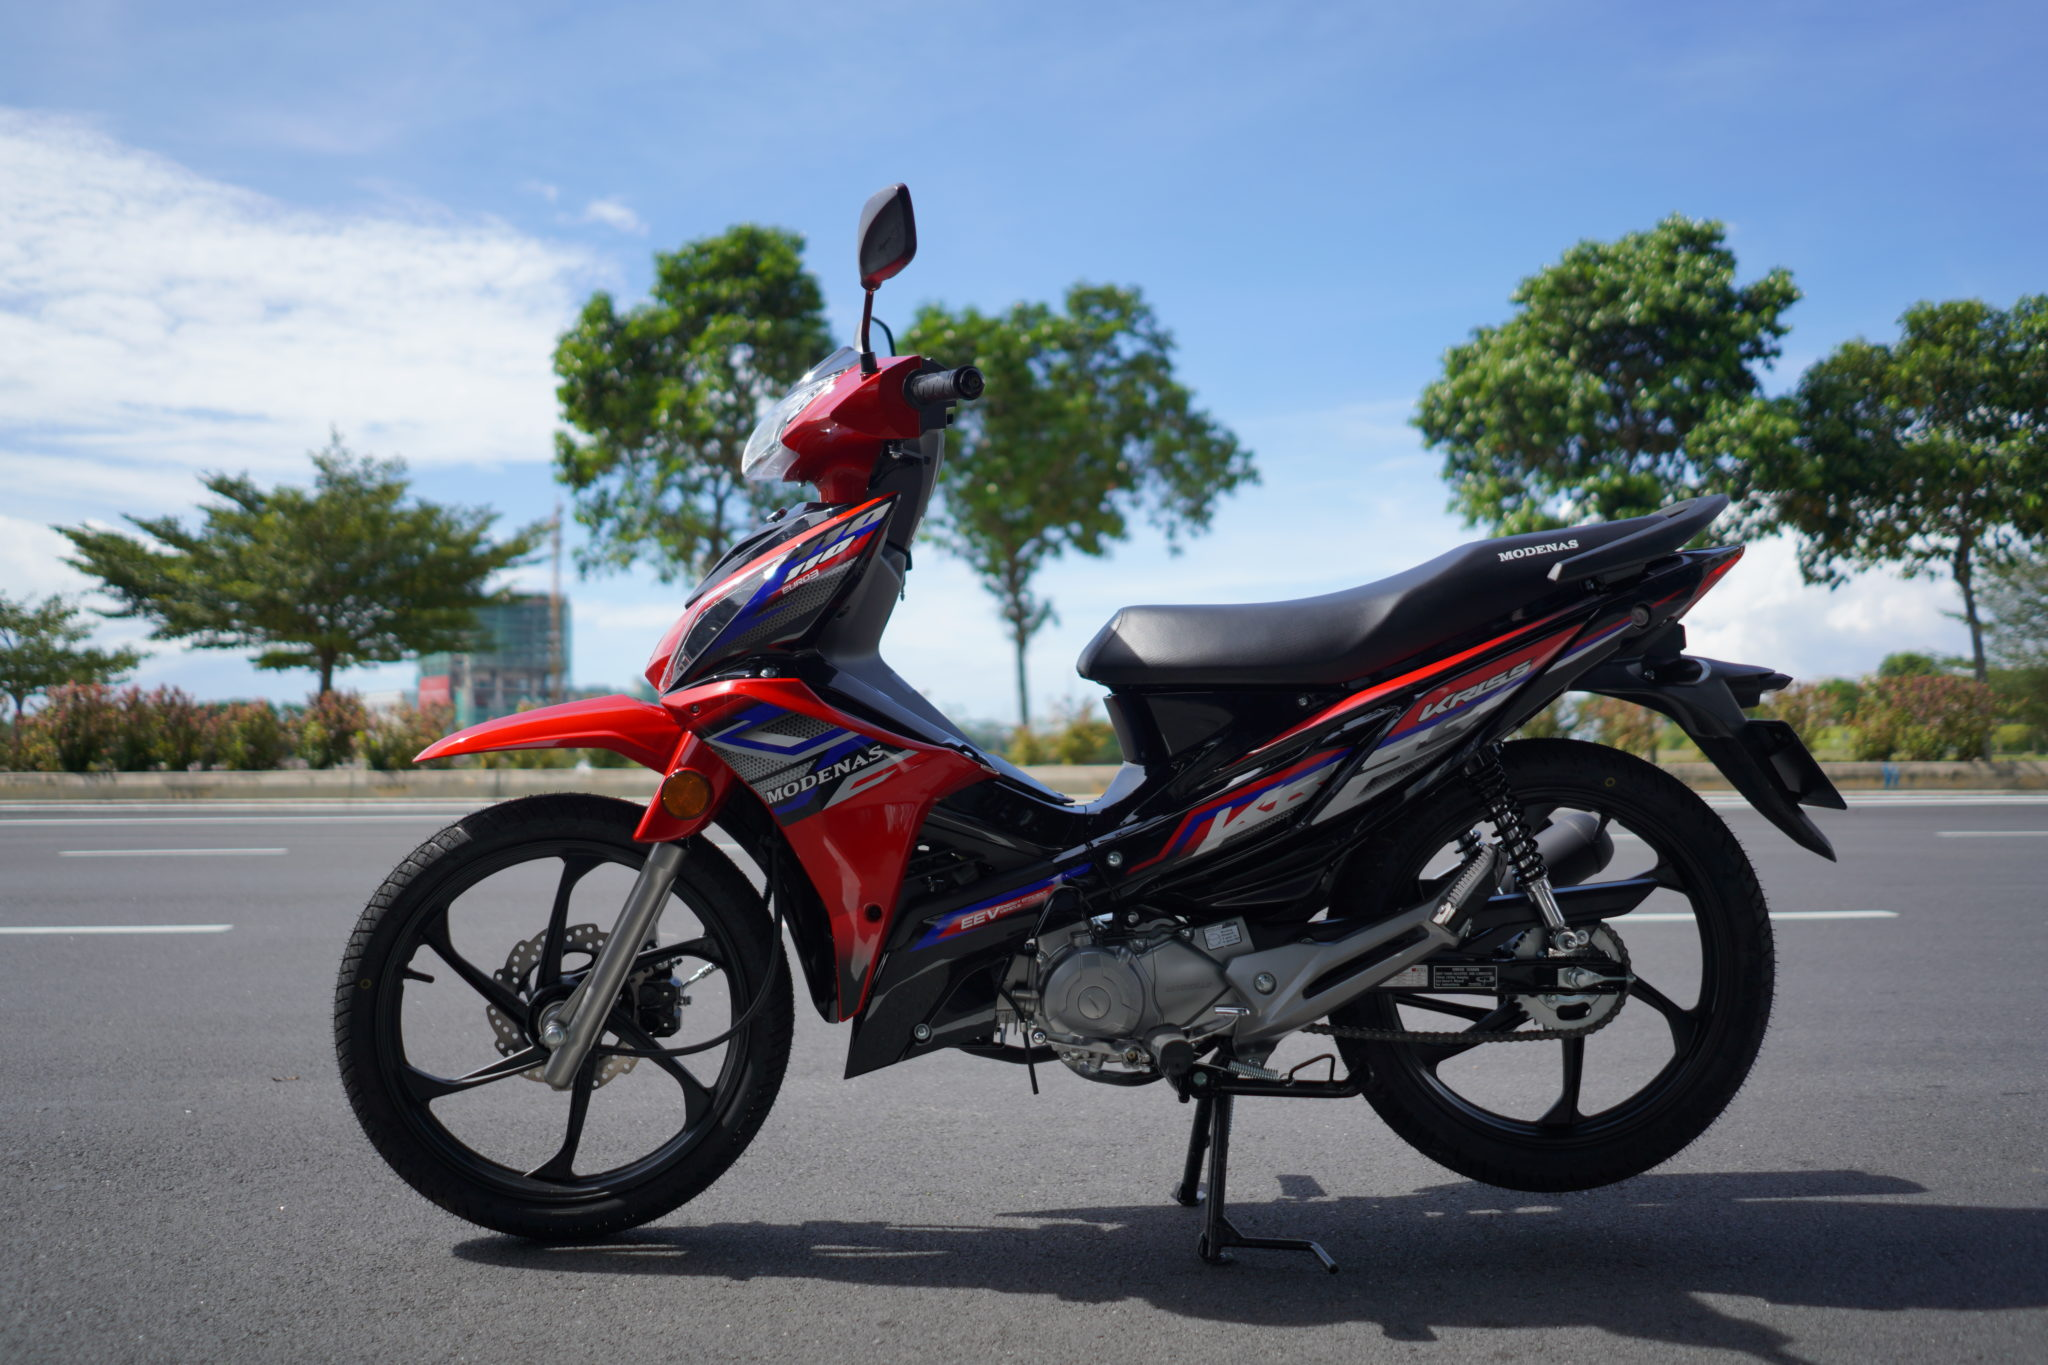 Modenas Kriss 110 Disc Brake Variant Launched in Malaysia - RM 3,877